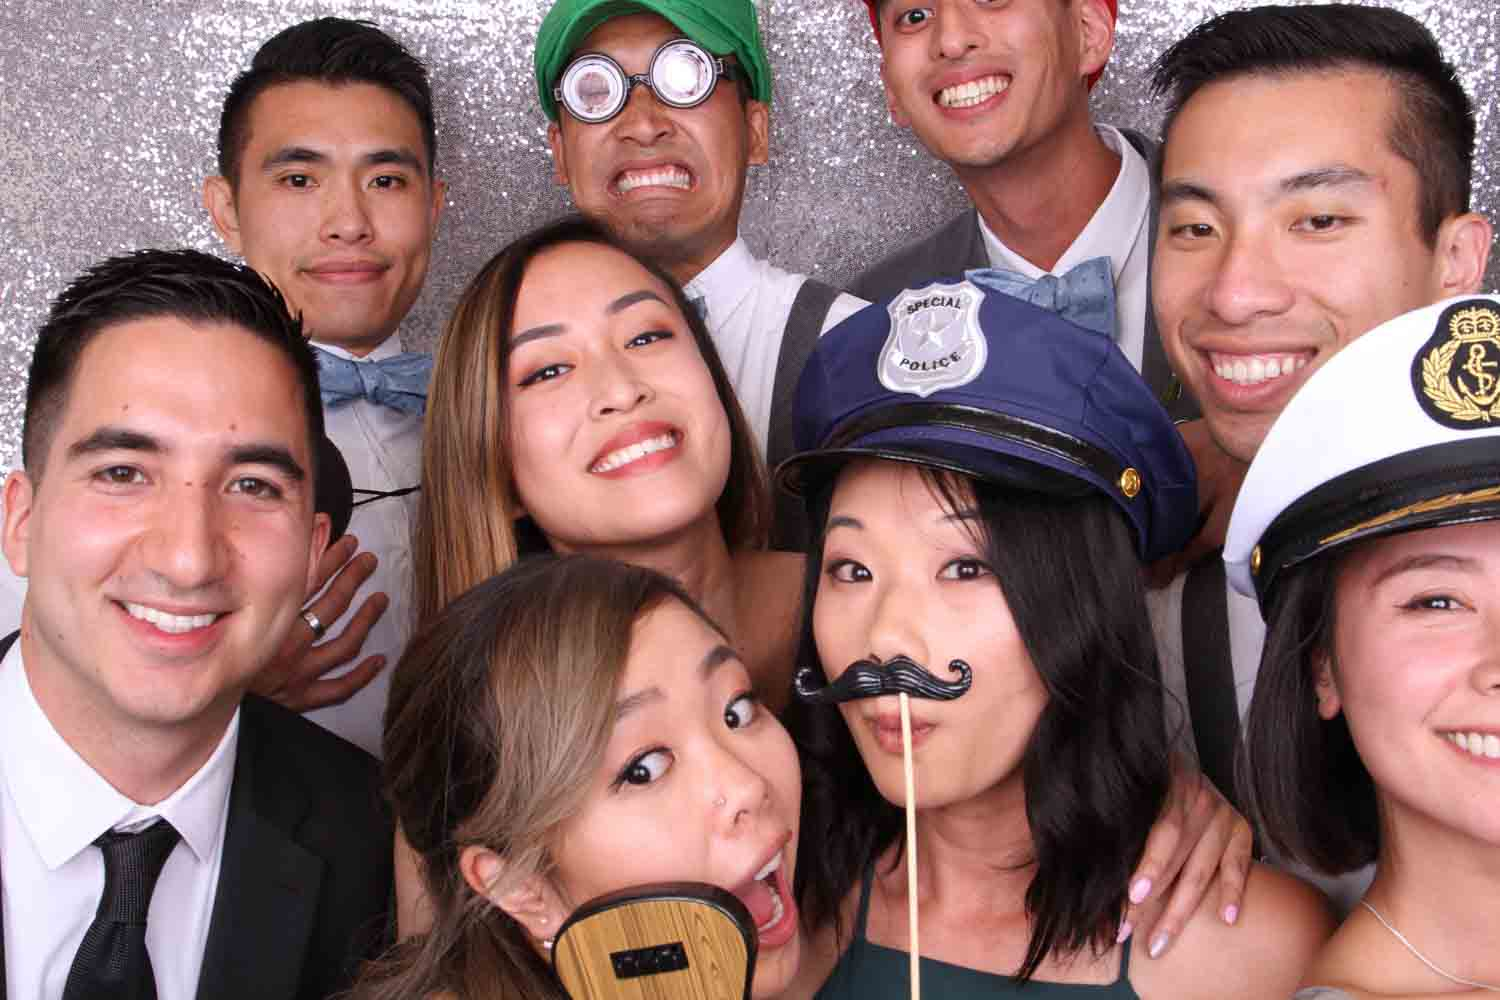 Chico Wedding Photo Booth-Big Hearts Photo Booth-2.jpg